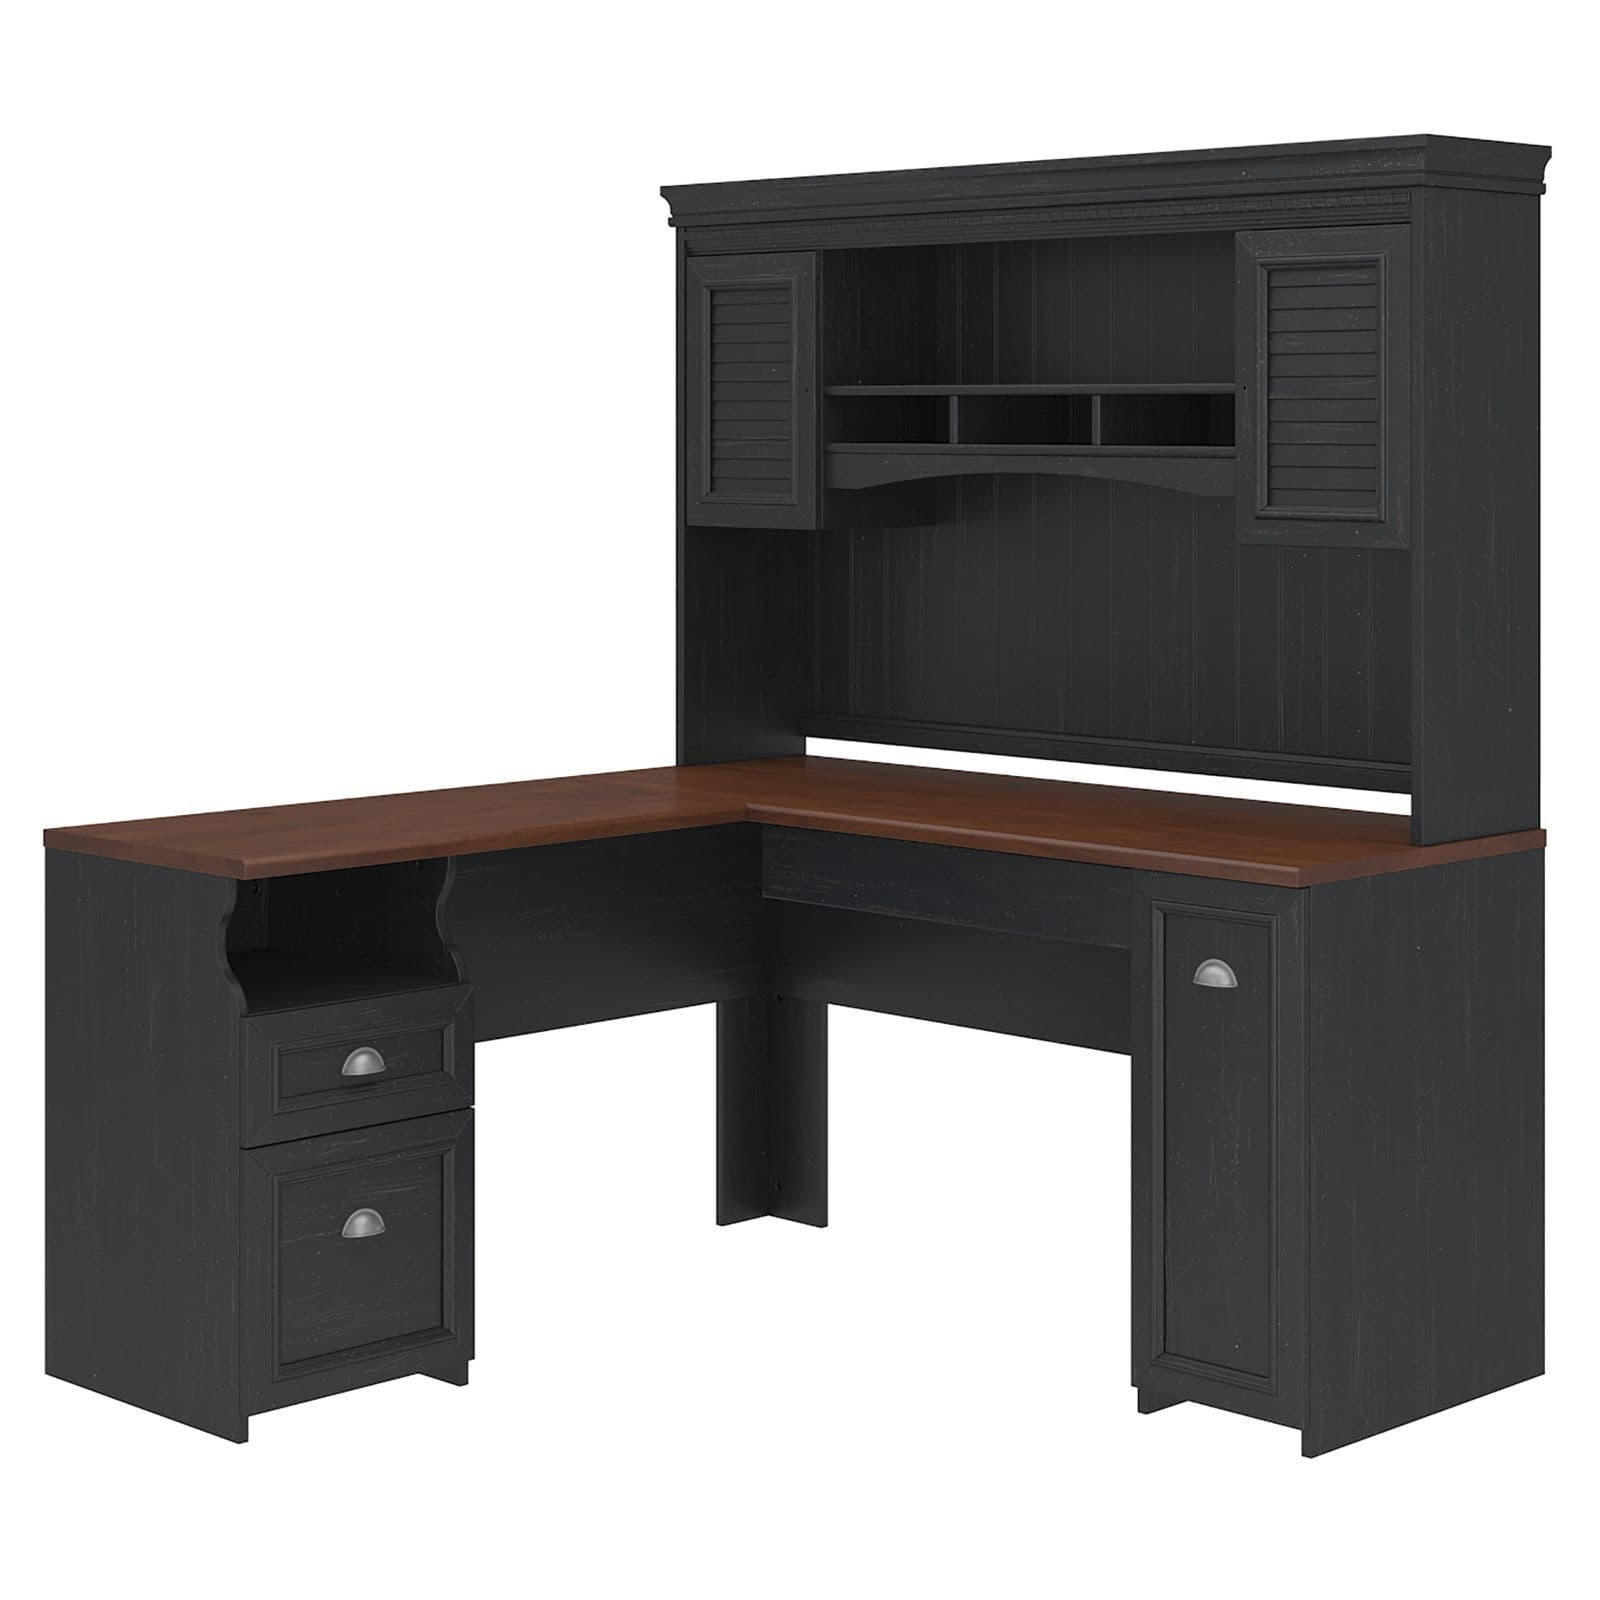 Antique Computer Desks Intended For Favorite Fairview L Shaped Desk With Hutch – Free Shipping Today (View 5 of 20)